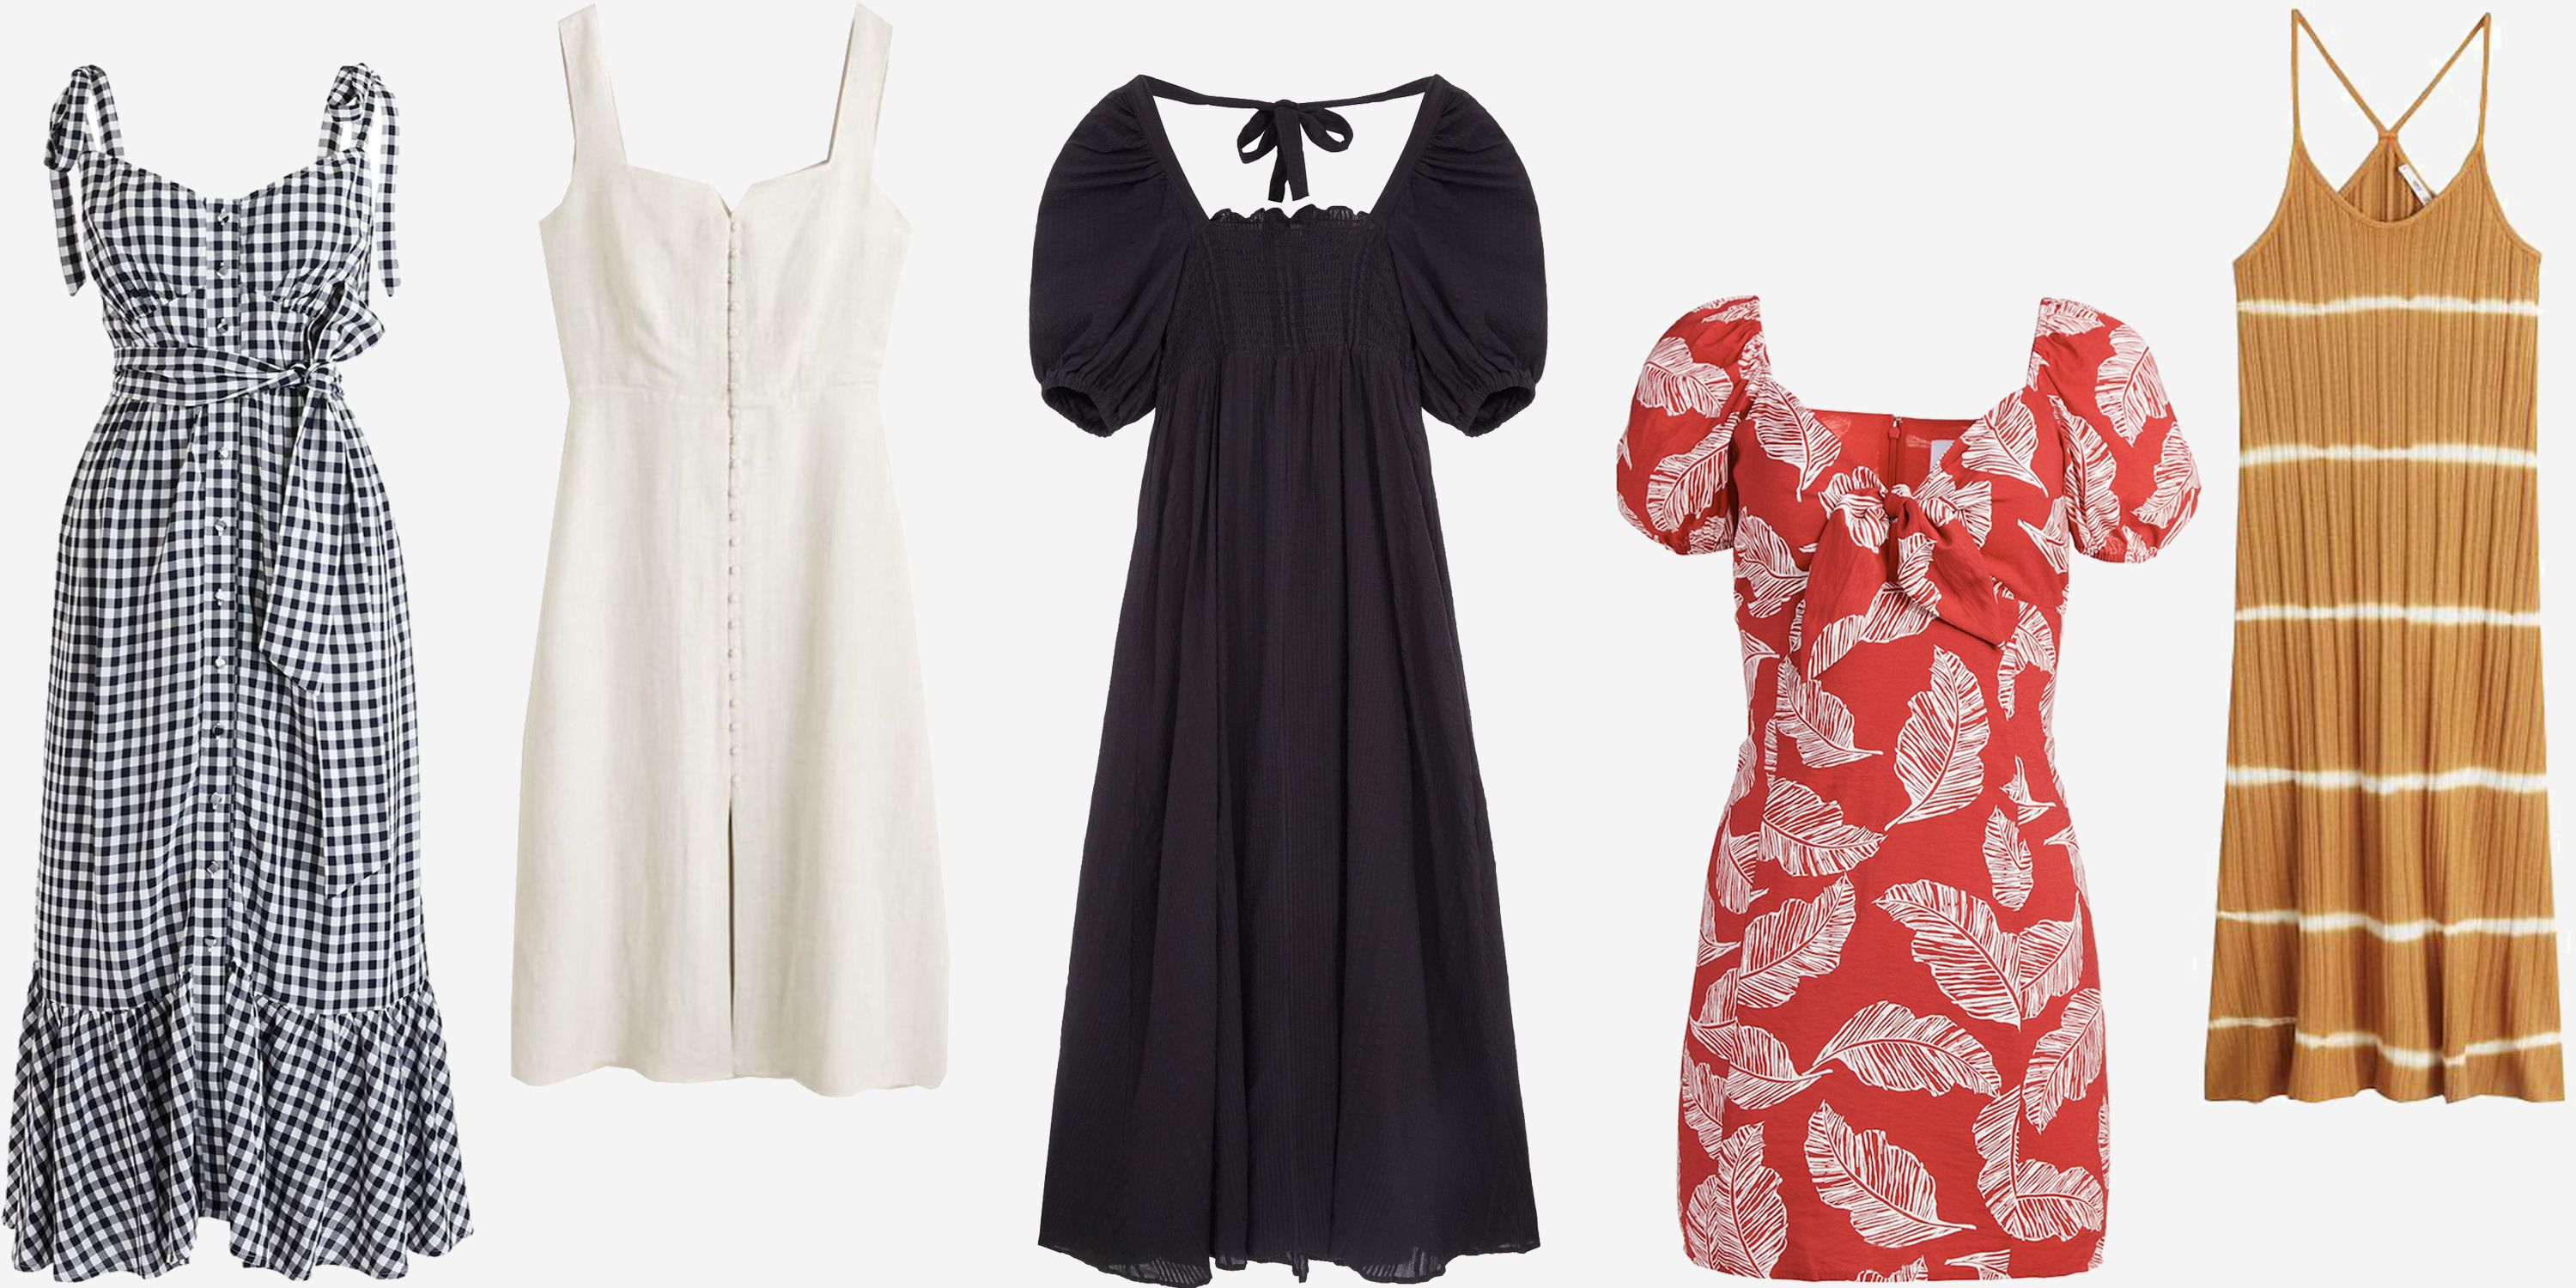 19 Affordable Summer Dresses to Add to Your Shopping Cart Now